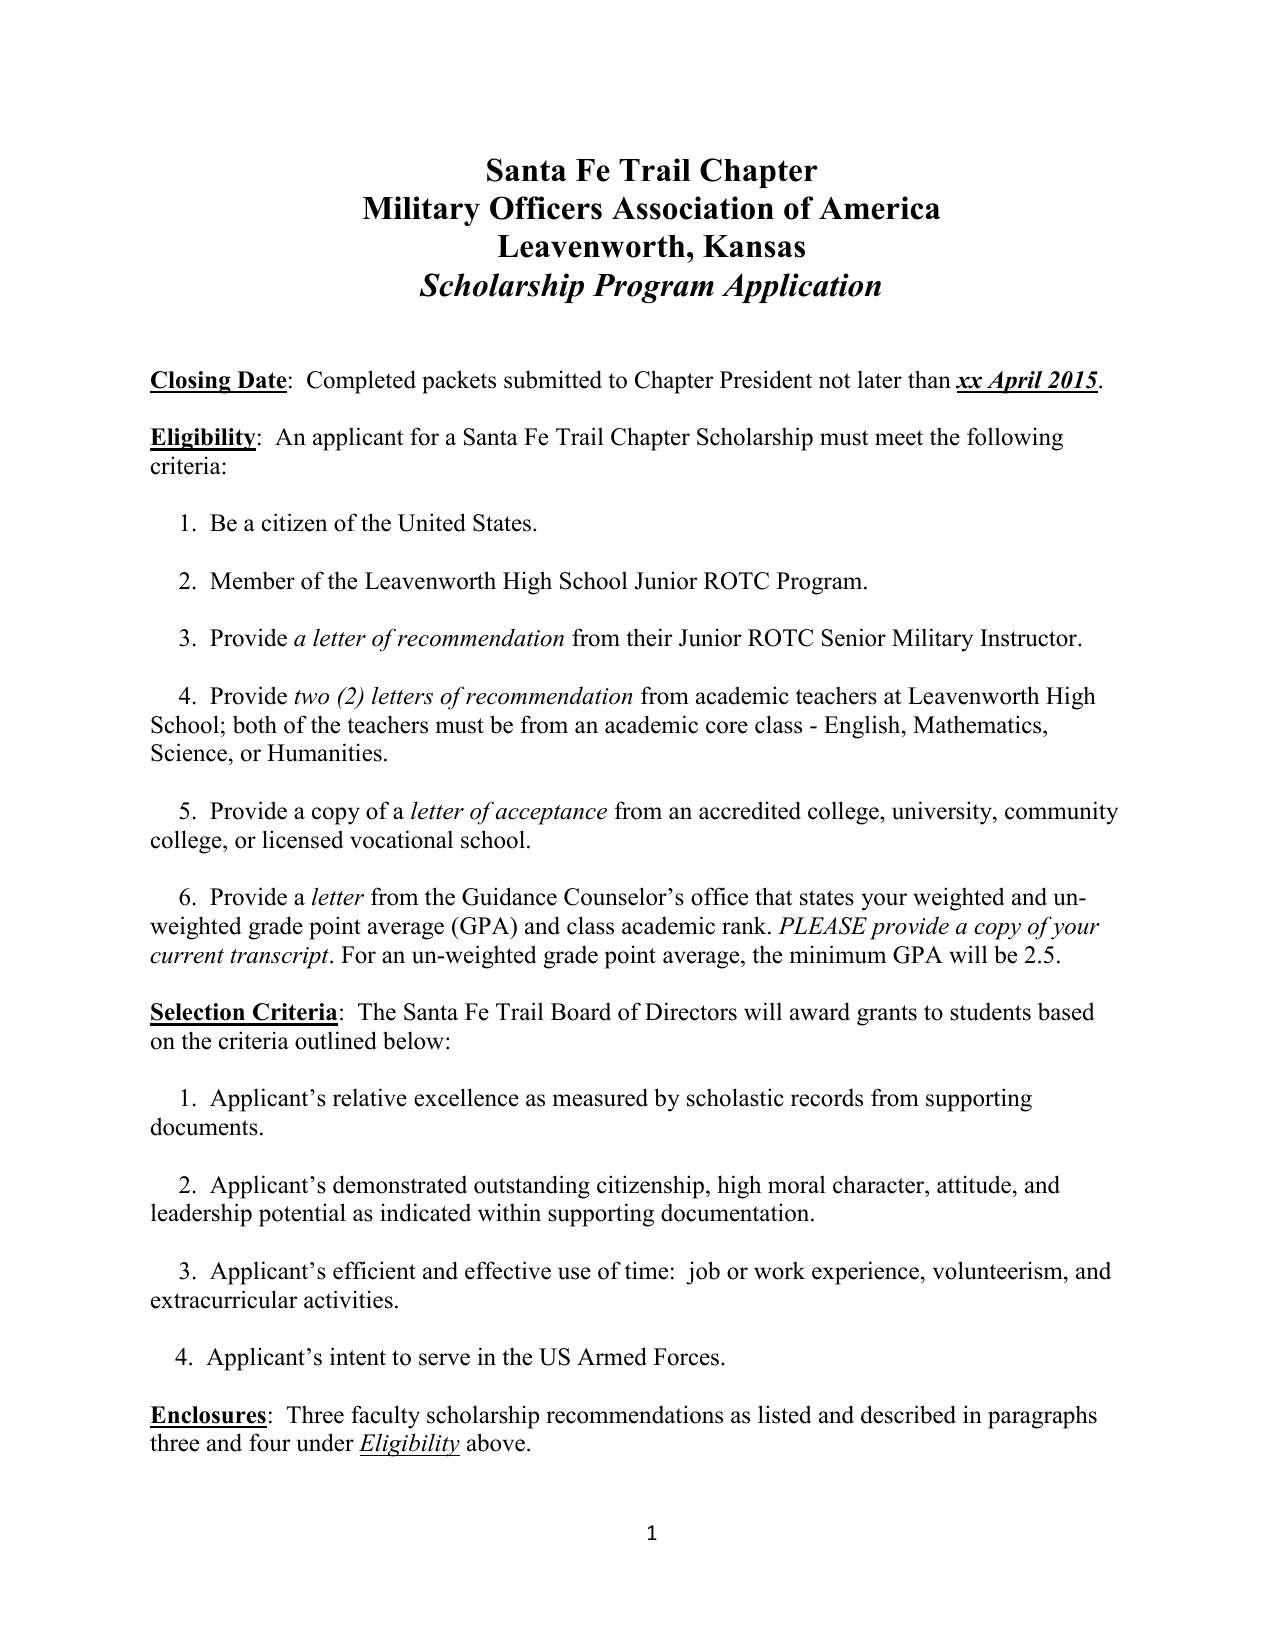 rotc letter of recommendation example - Monza berglauf-verband com